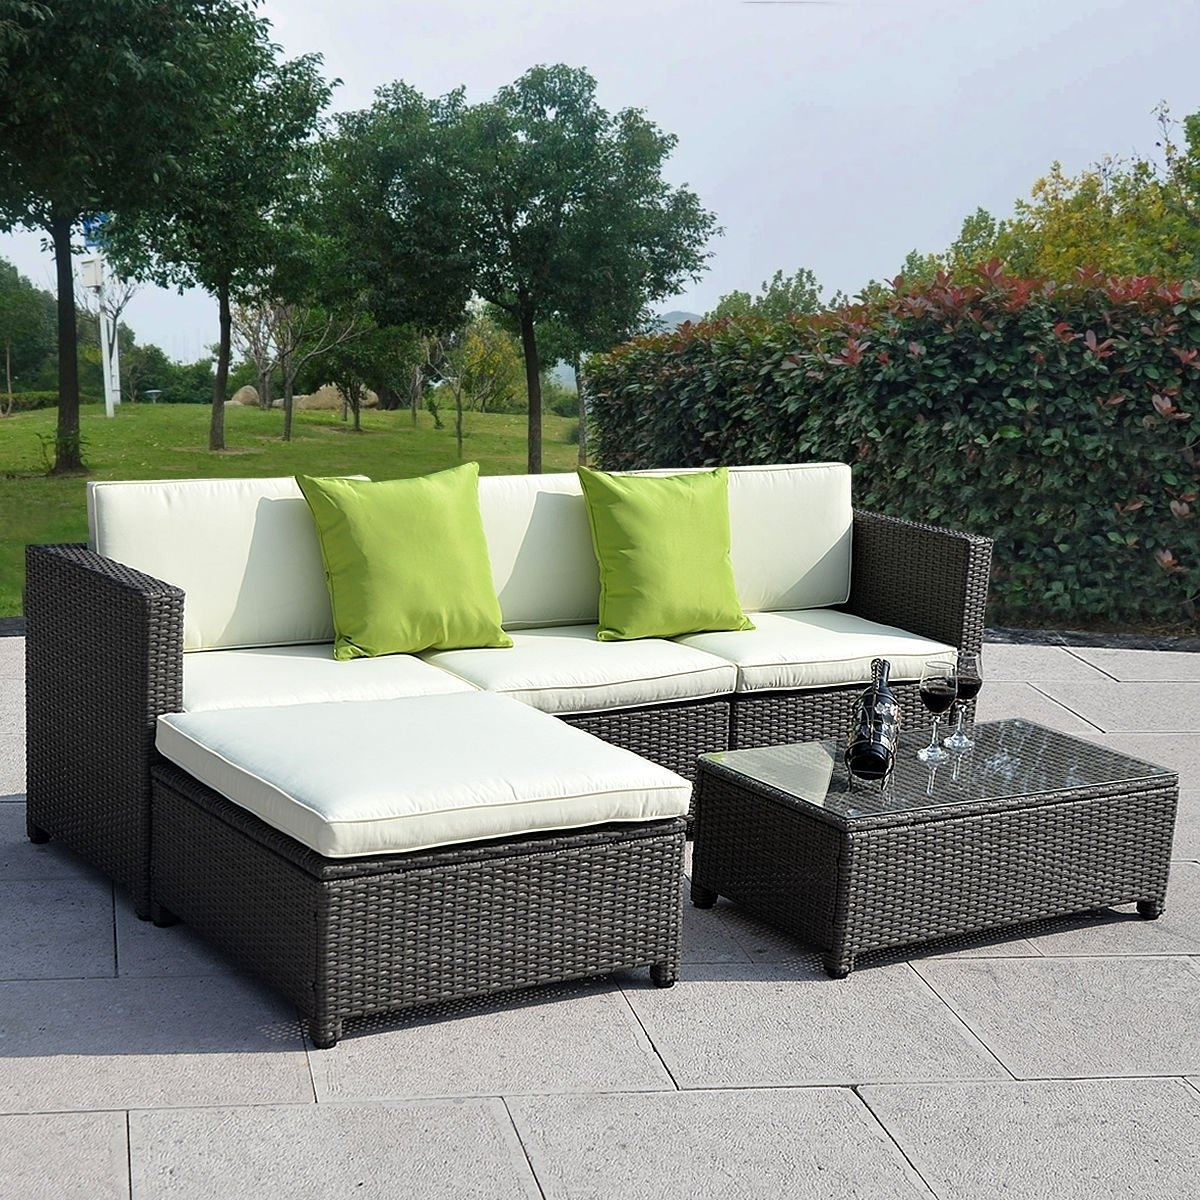 Small Patio Conversation Sets For Current Conversation Area Furniture Outdoor Conversation Sets Sirio Patio (View 10 of 20)